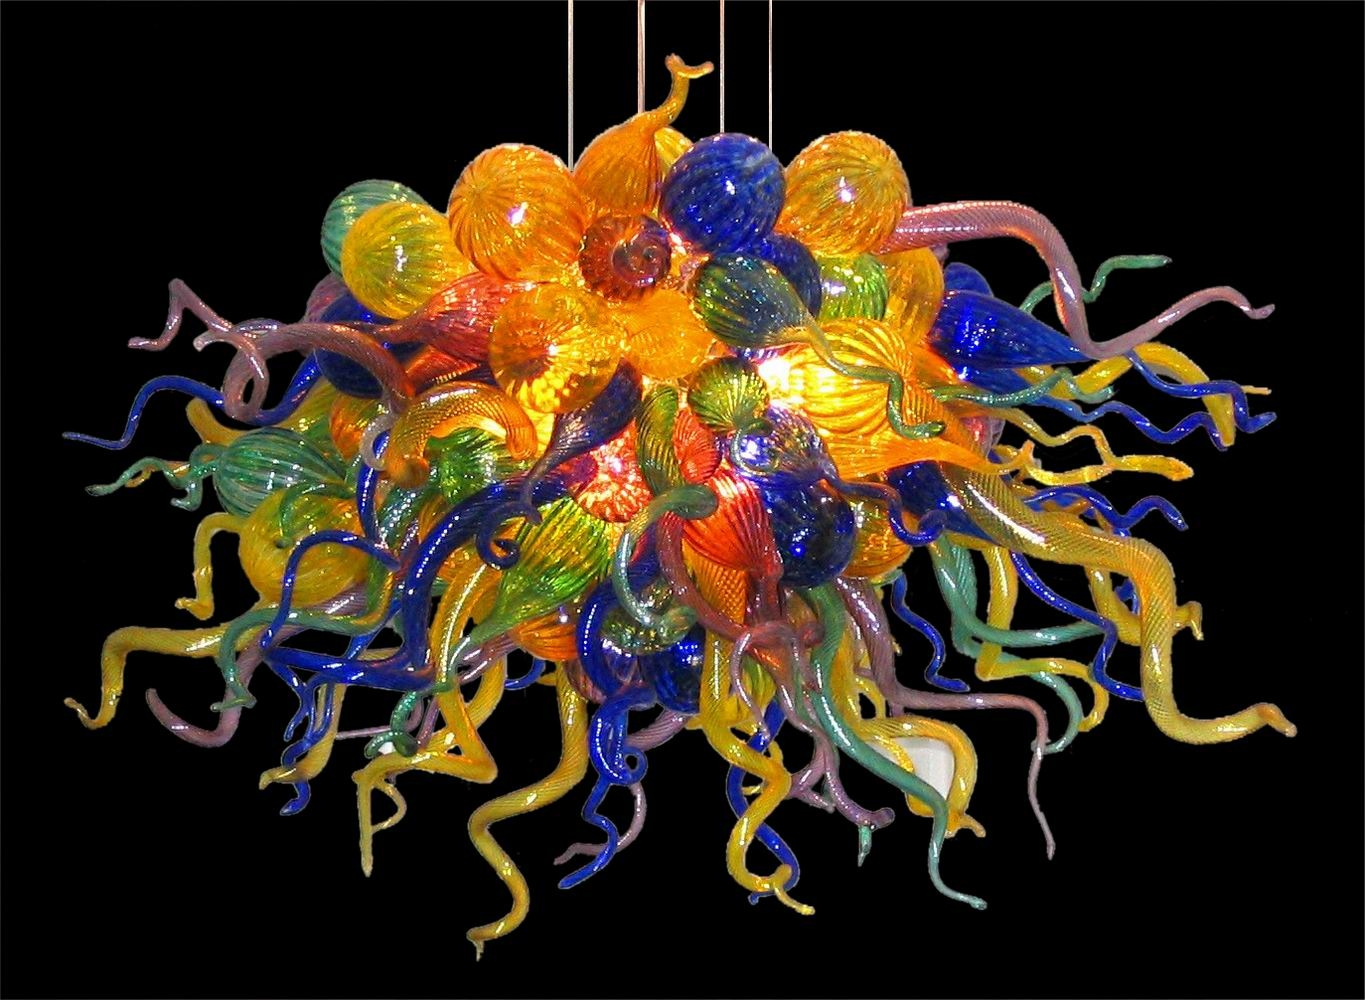 Chandelier Stunning Colored Chandelier Fascinating Colored Regarding Gypsy Chandeliers (View 21 of 25)